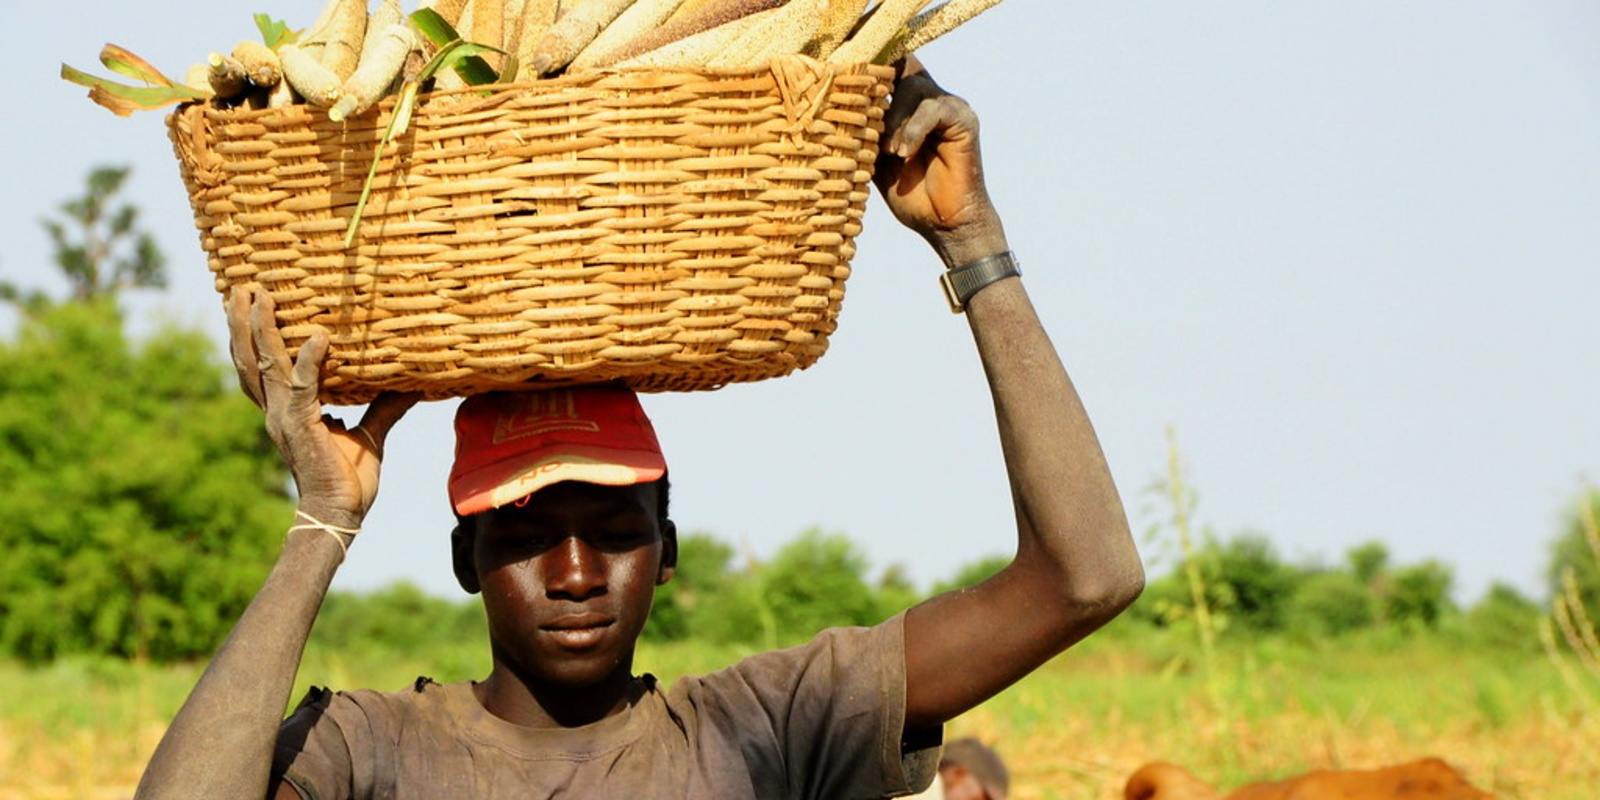 Farmer carrying crops from the field. Picture from the village of Bouwéré in Mali